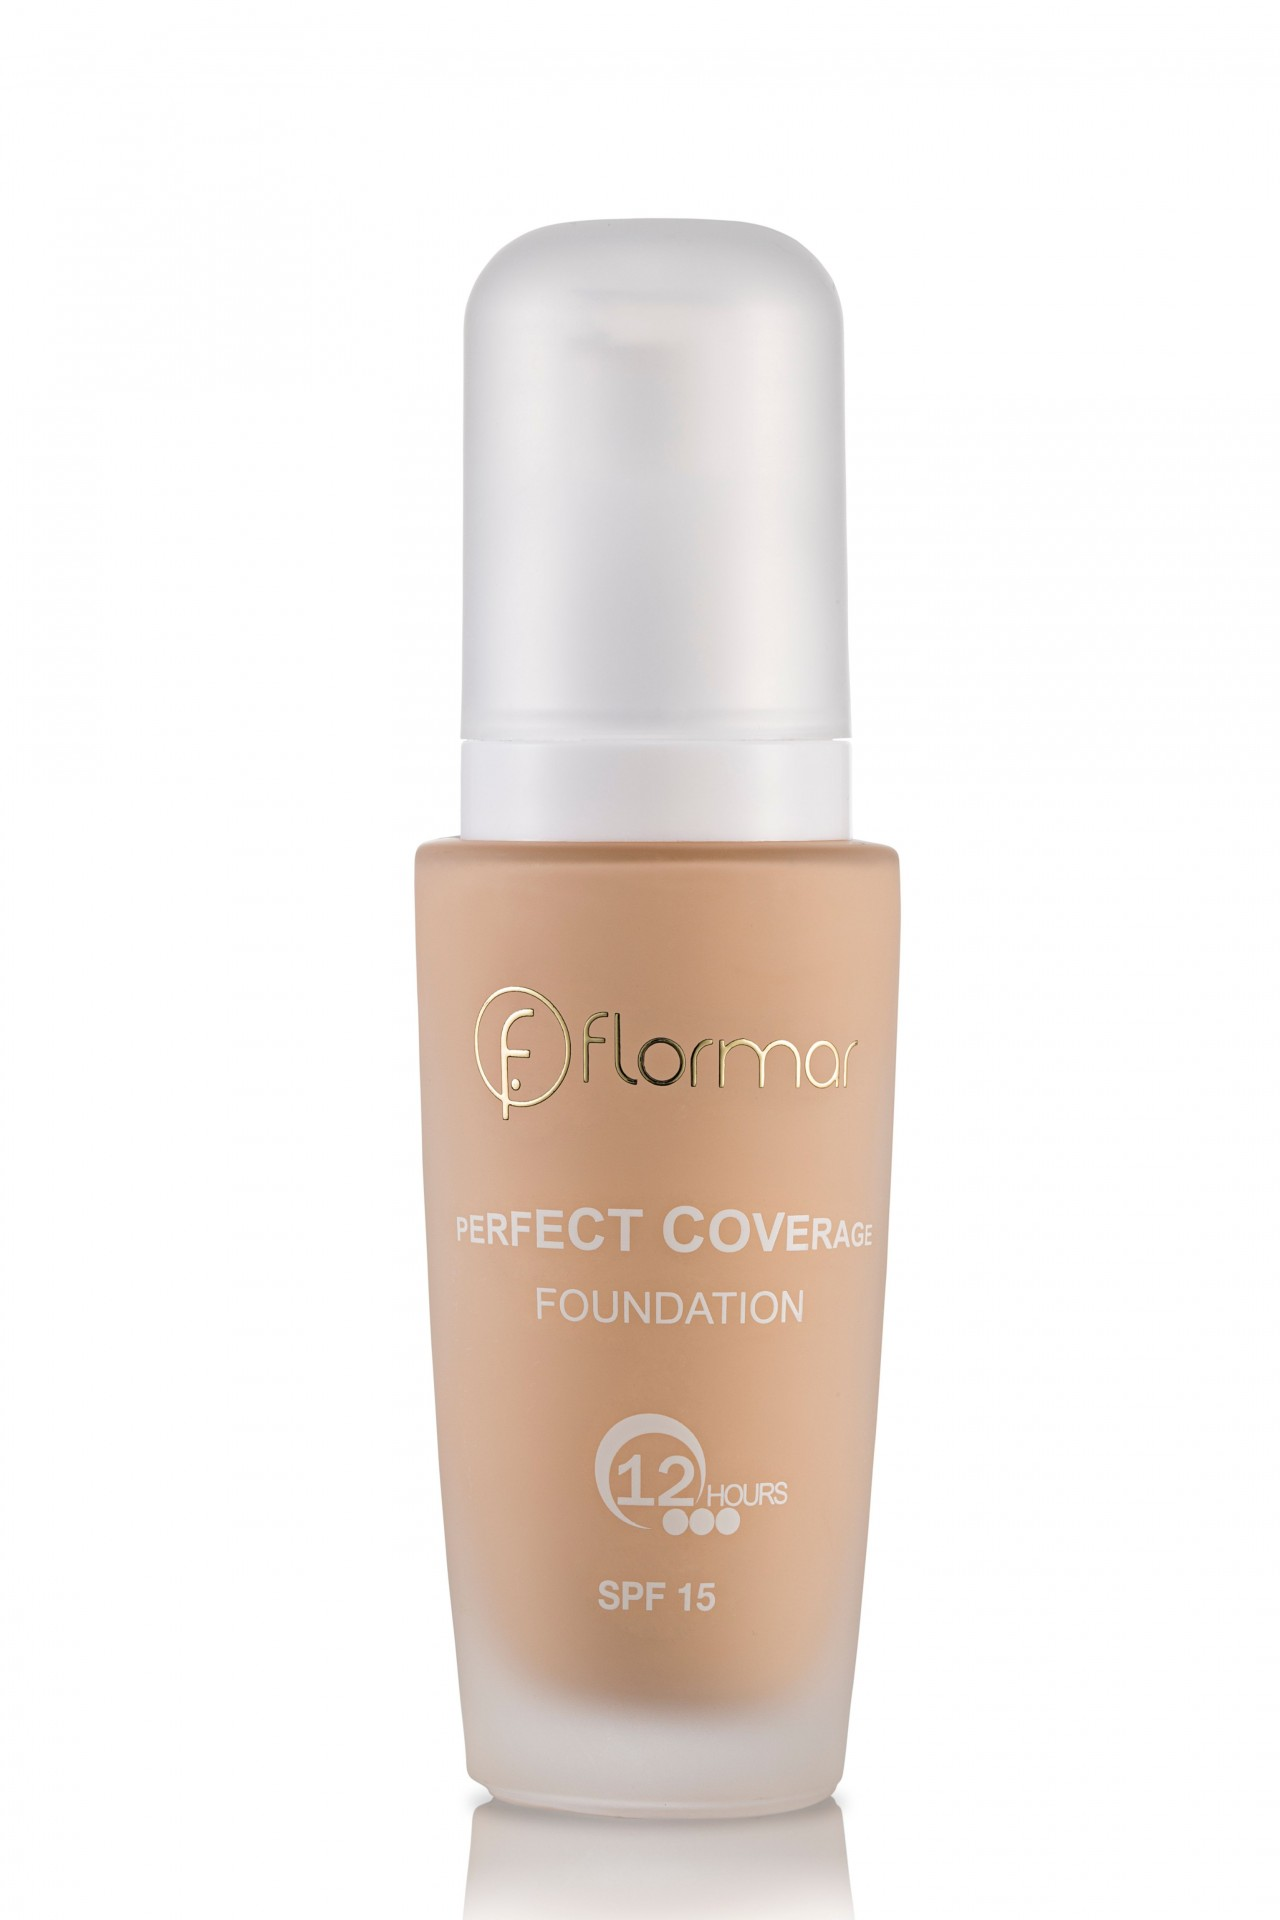 FLORMAR PERFECT COVERAGE